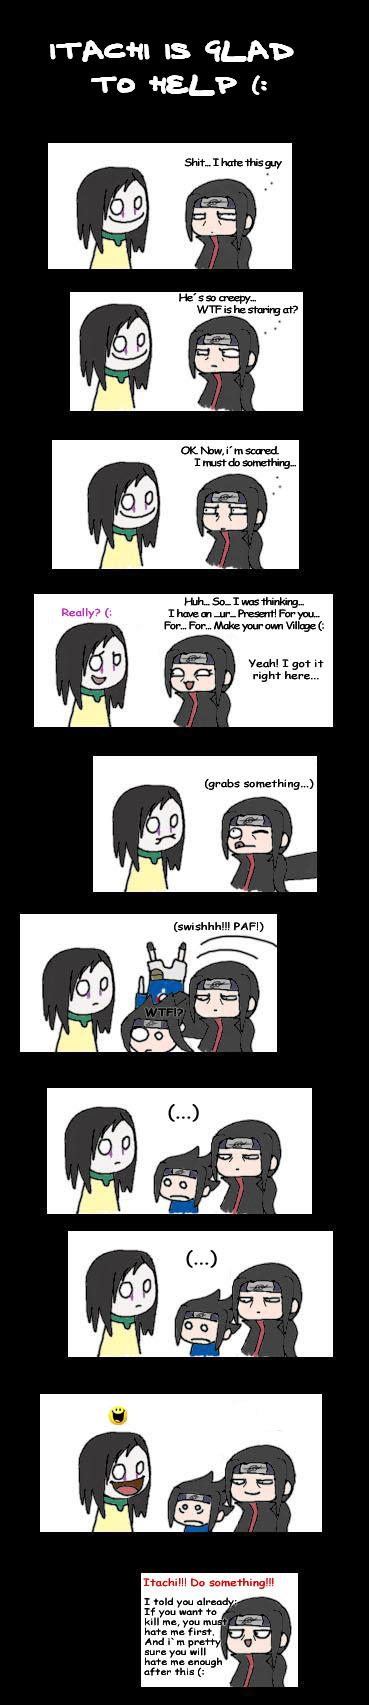 Itachi is glad to help by Smellerbee